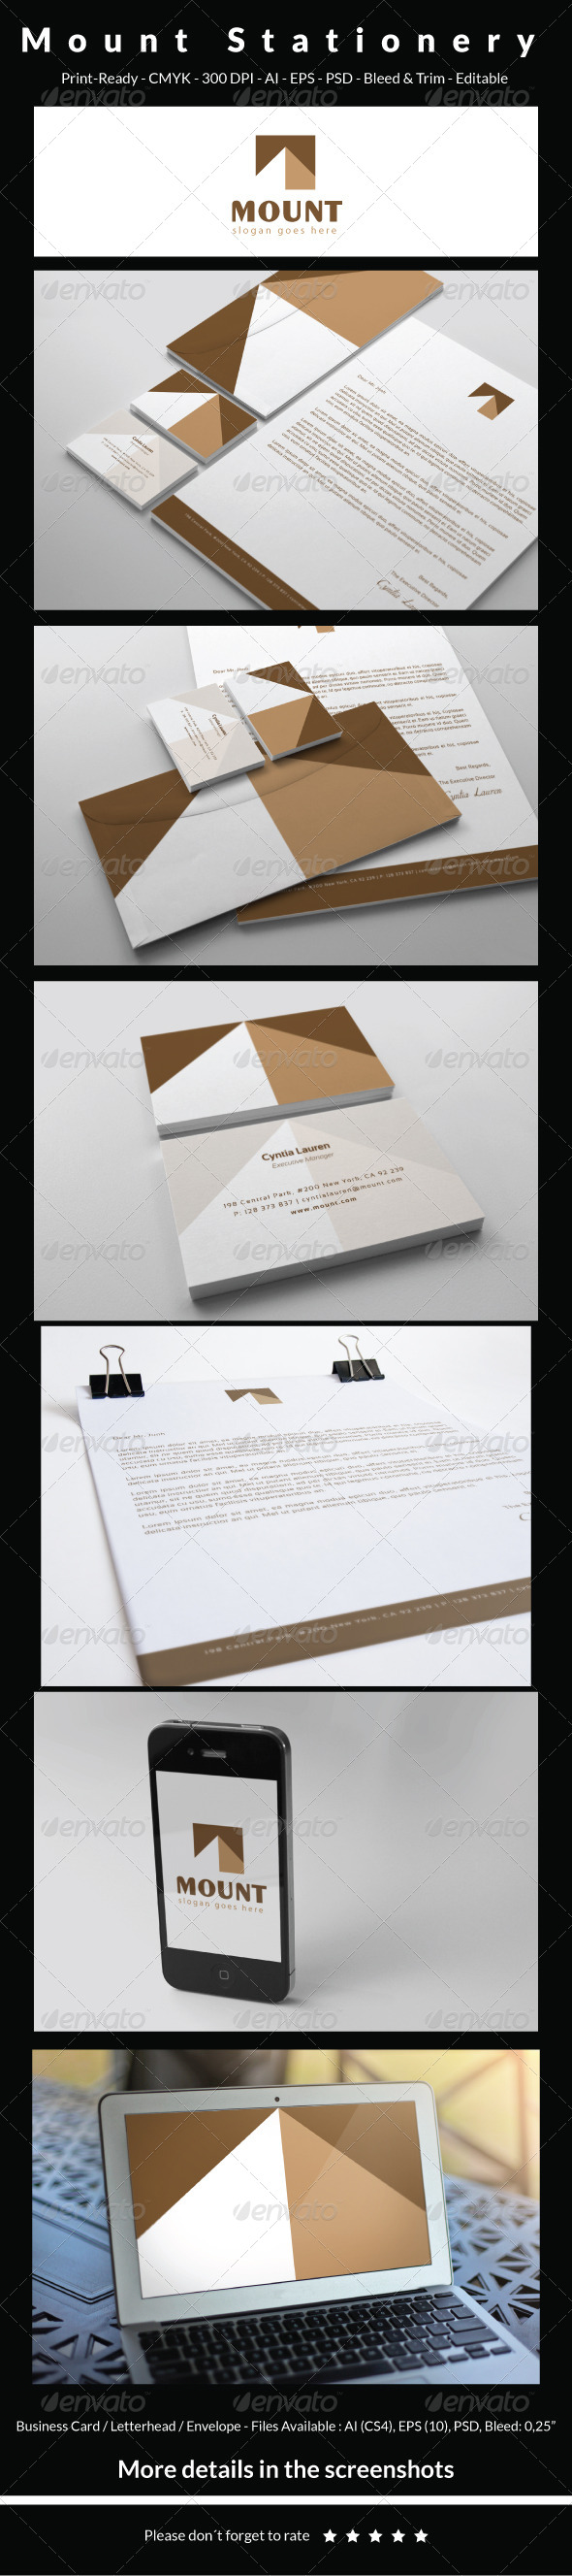 GraphicRiver Mount Stationery 5557119